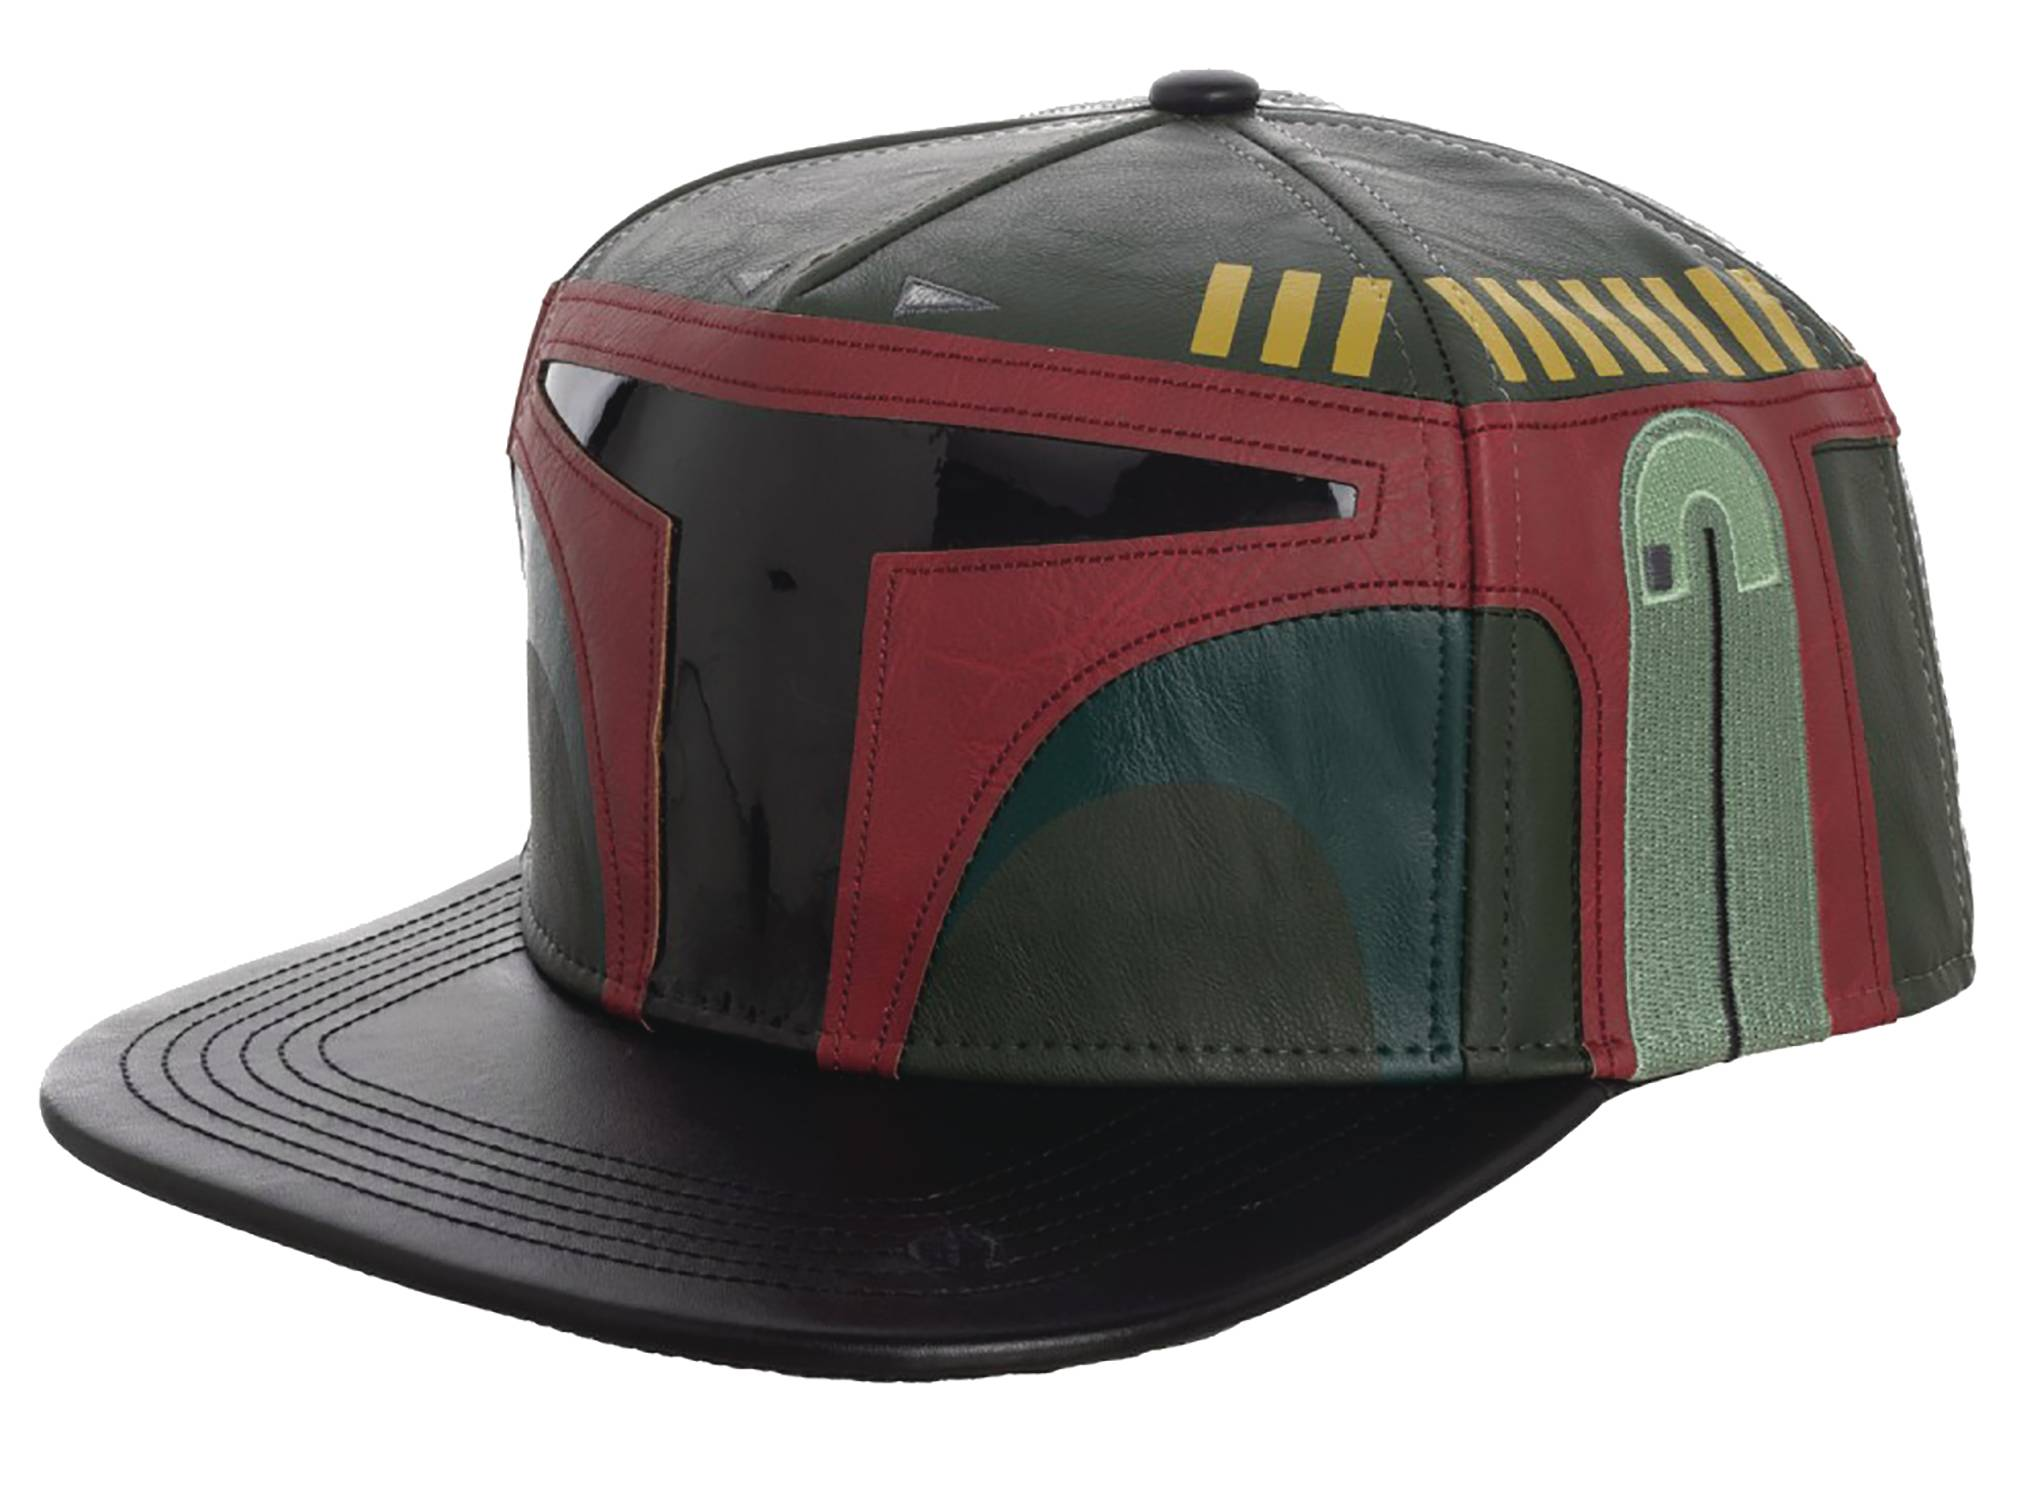 STAR WARS BOBA FETT EMBROIDERED SNAPBACK CAP W/SOUND CHIP